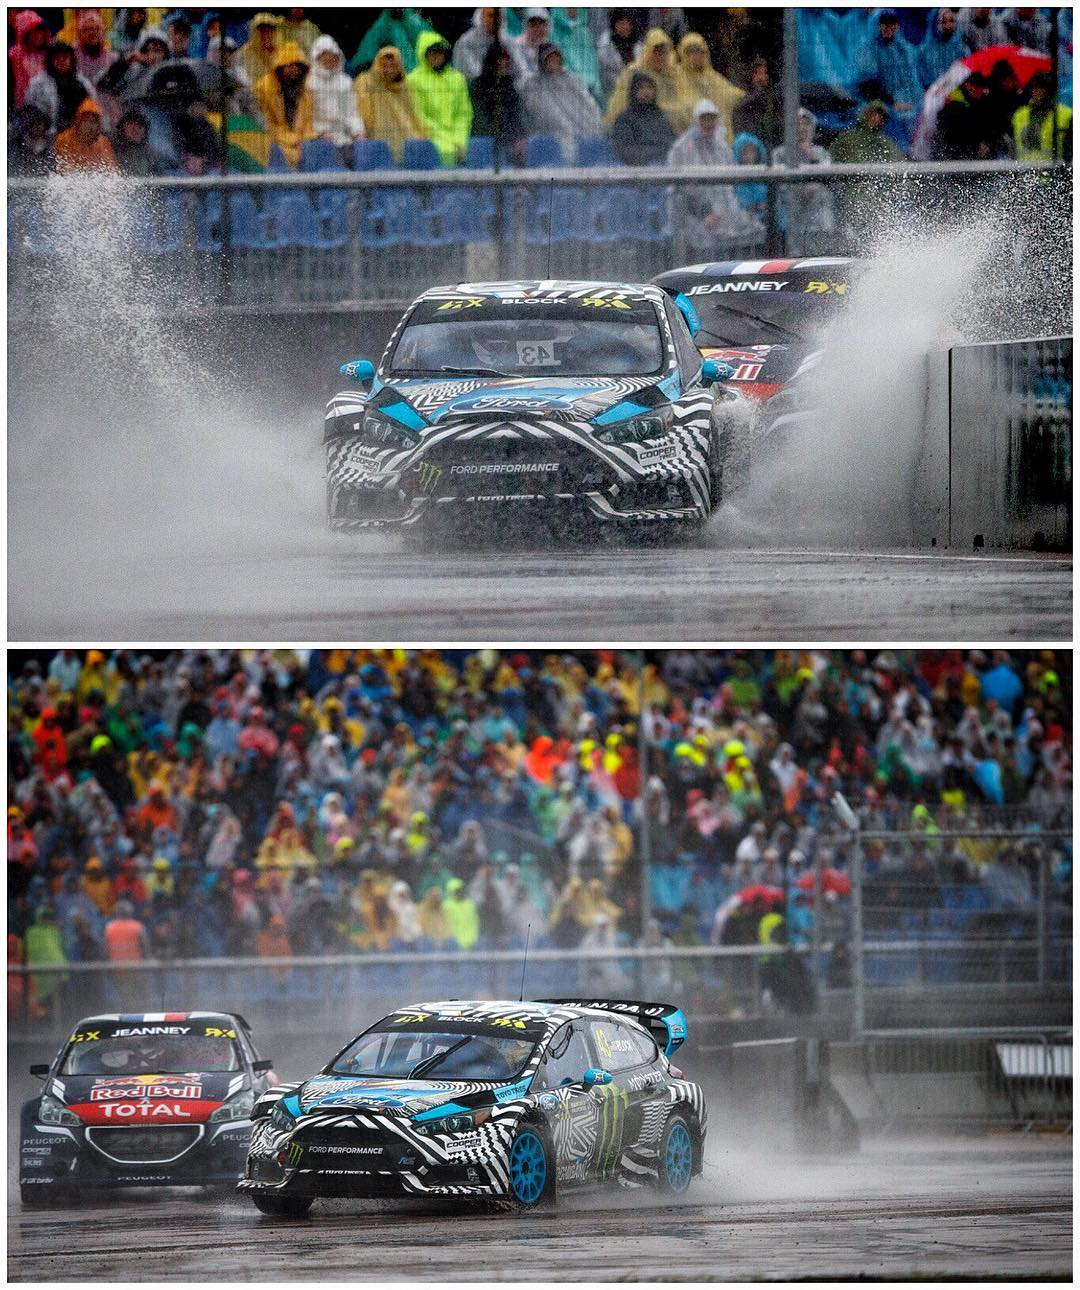 Ran out of talent and luck today here at #LatviaRX. Very wet and tough conditions on the track. I made a small mistake that ruined my Q3 race, then my buddy Gigi Galli moved over very aggressively in the start of our Q4 race and the impact + resulting...